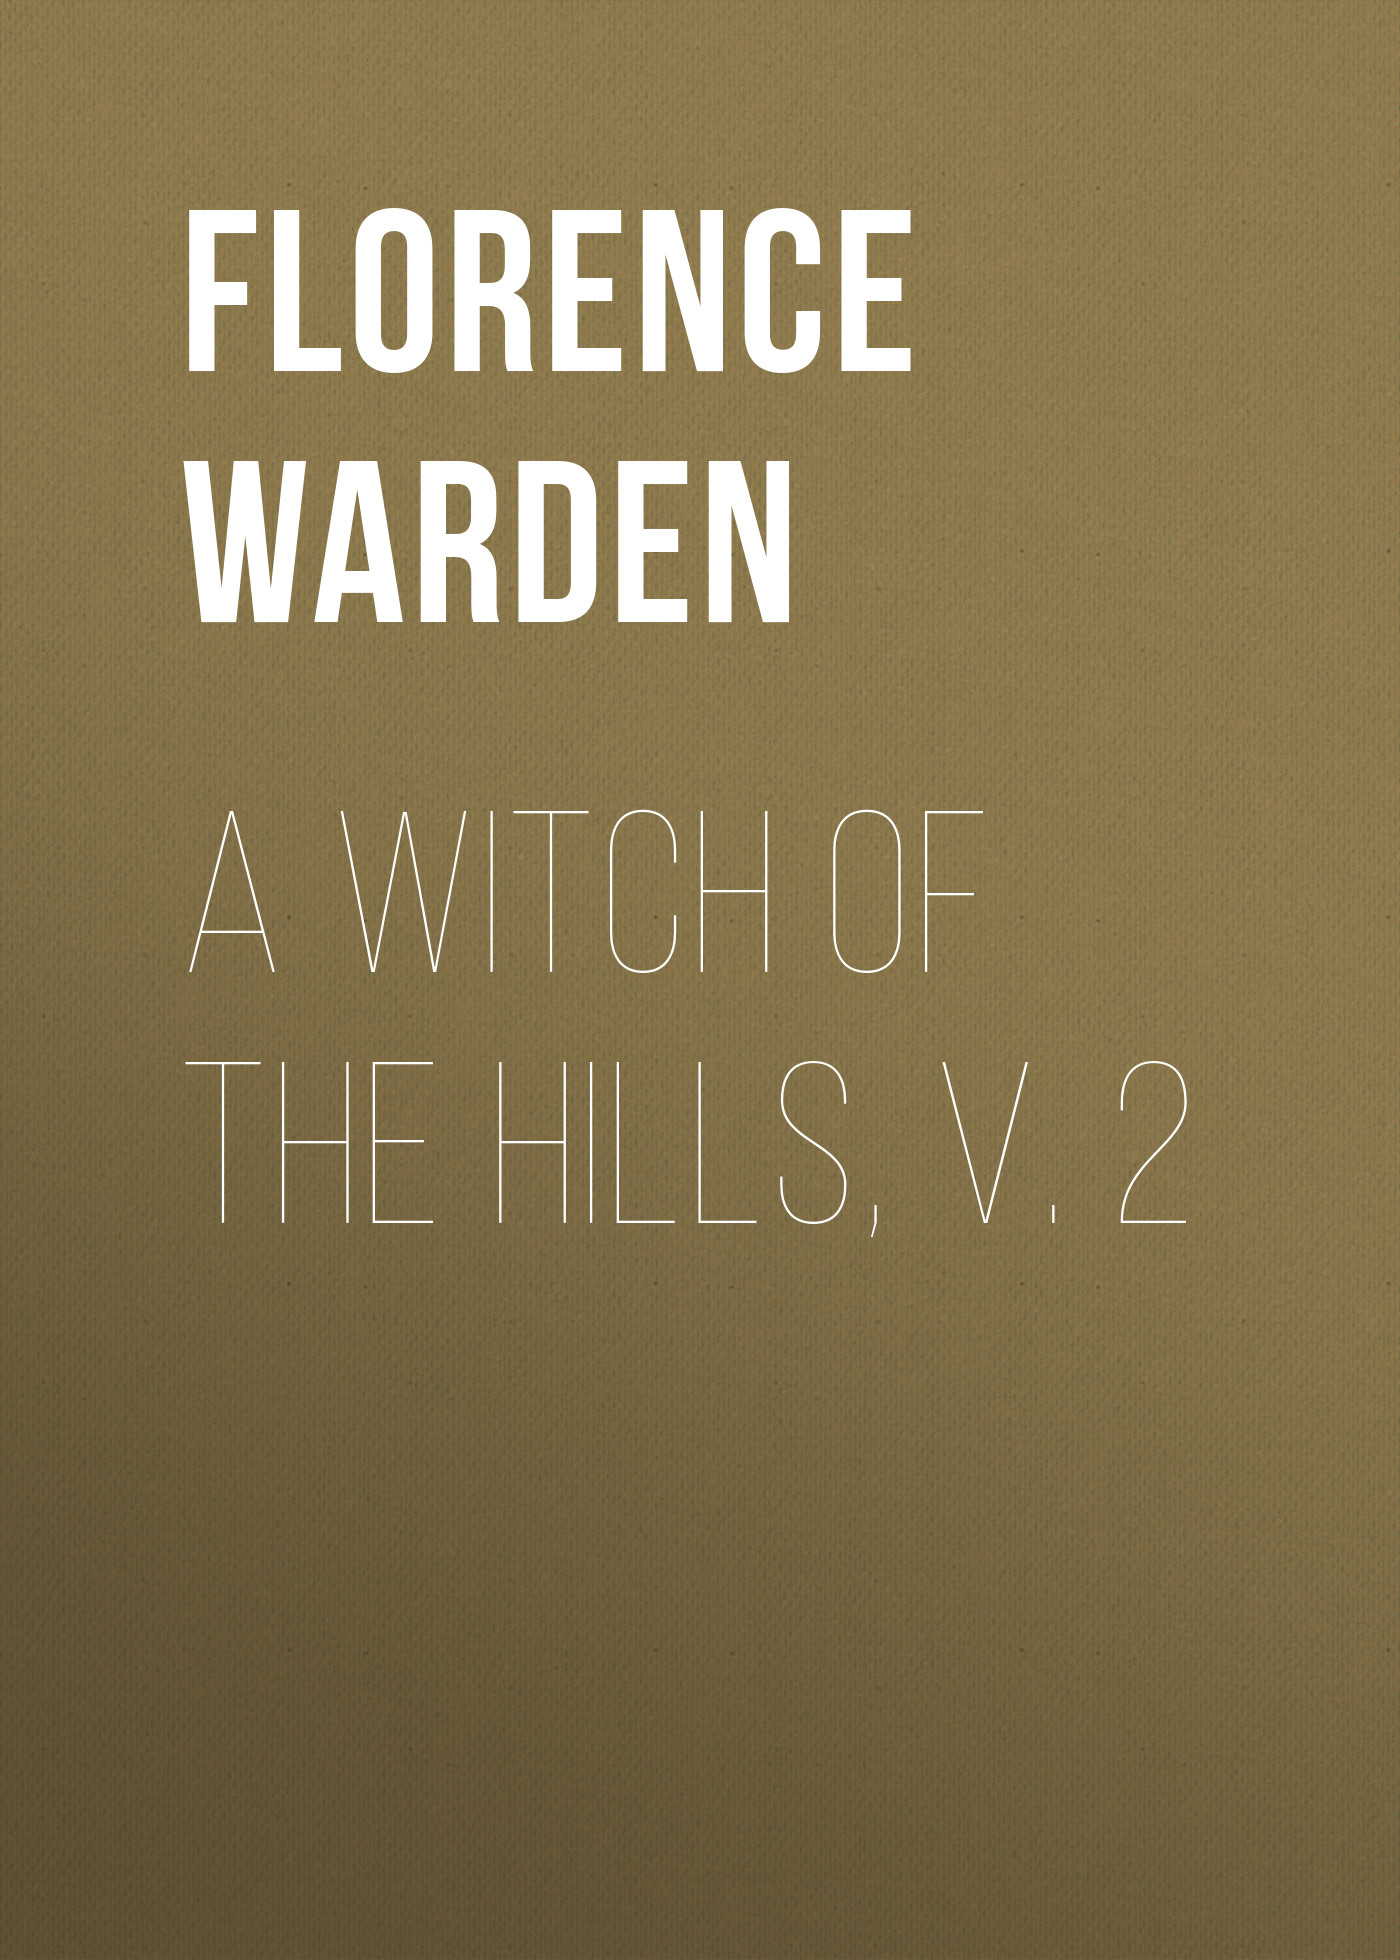 Florence Warden A Witch of the Hills, v. 2